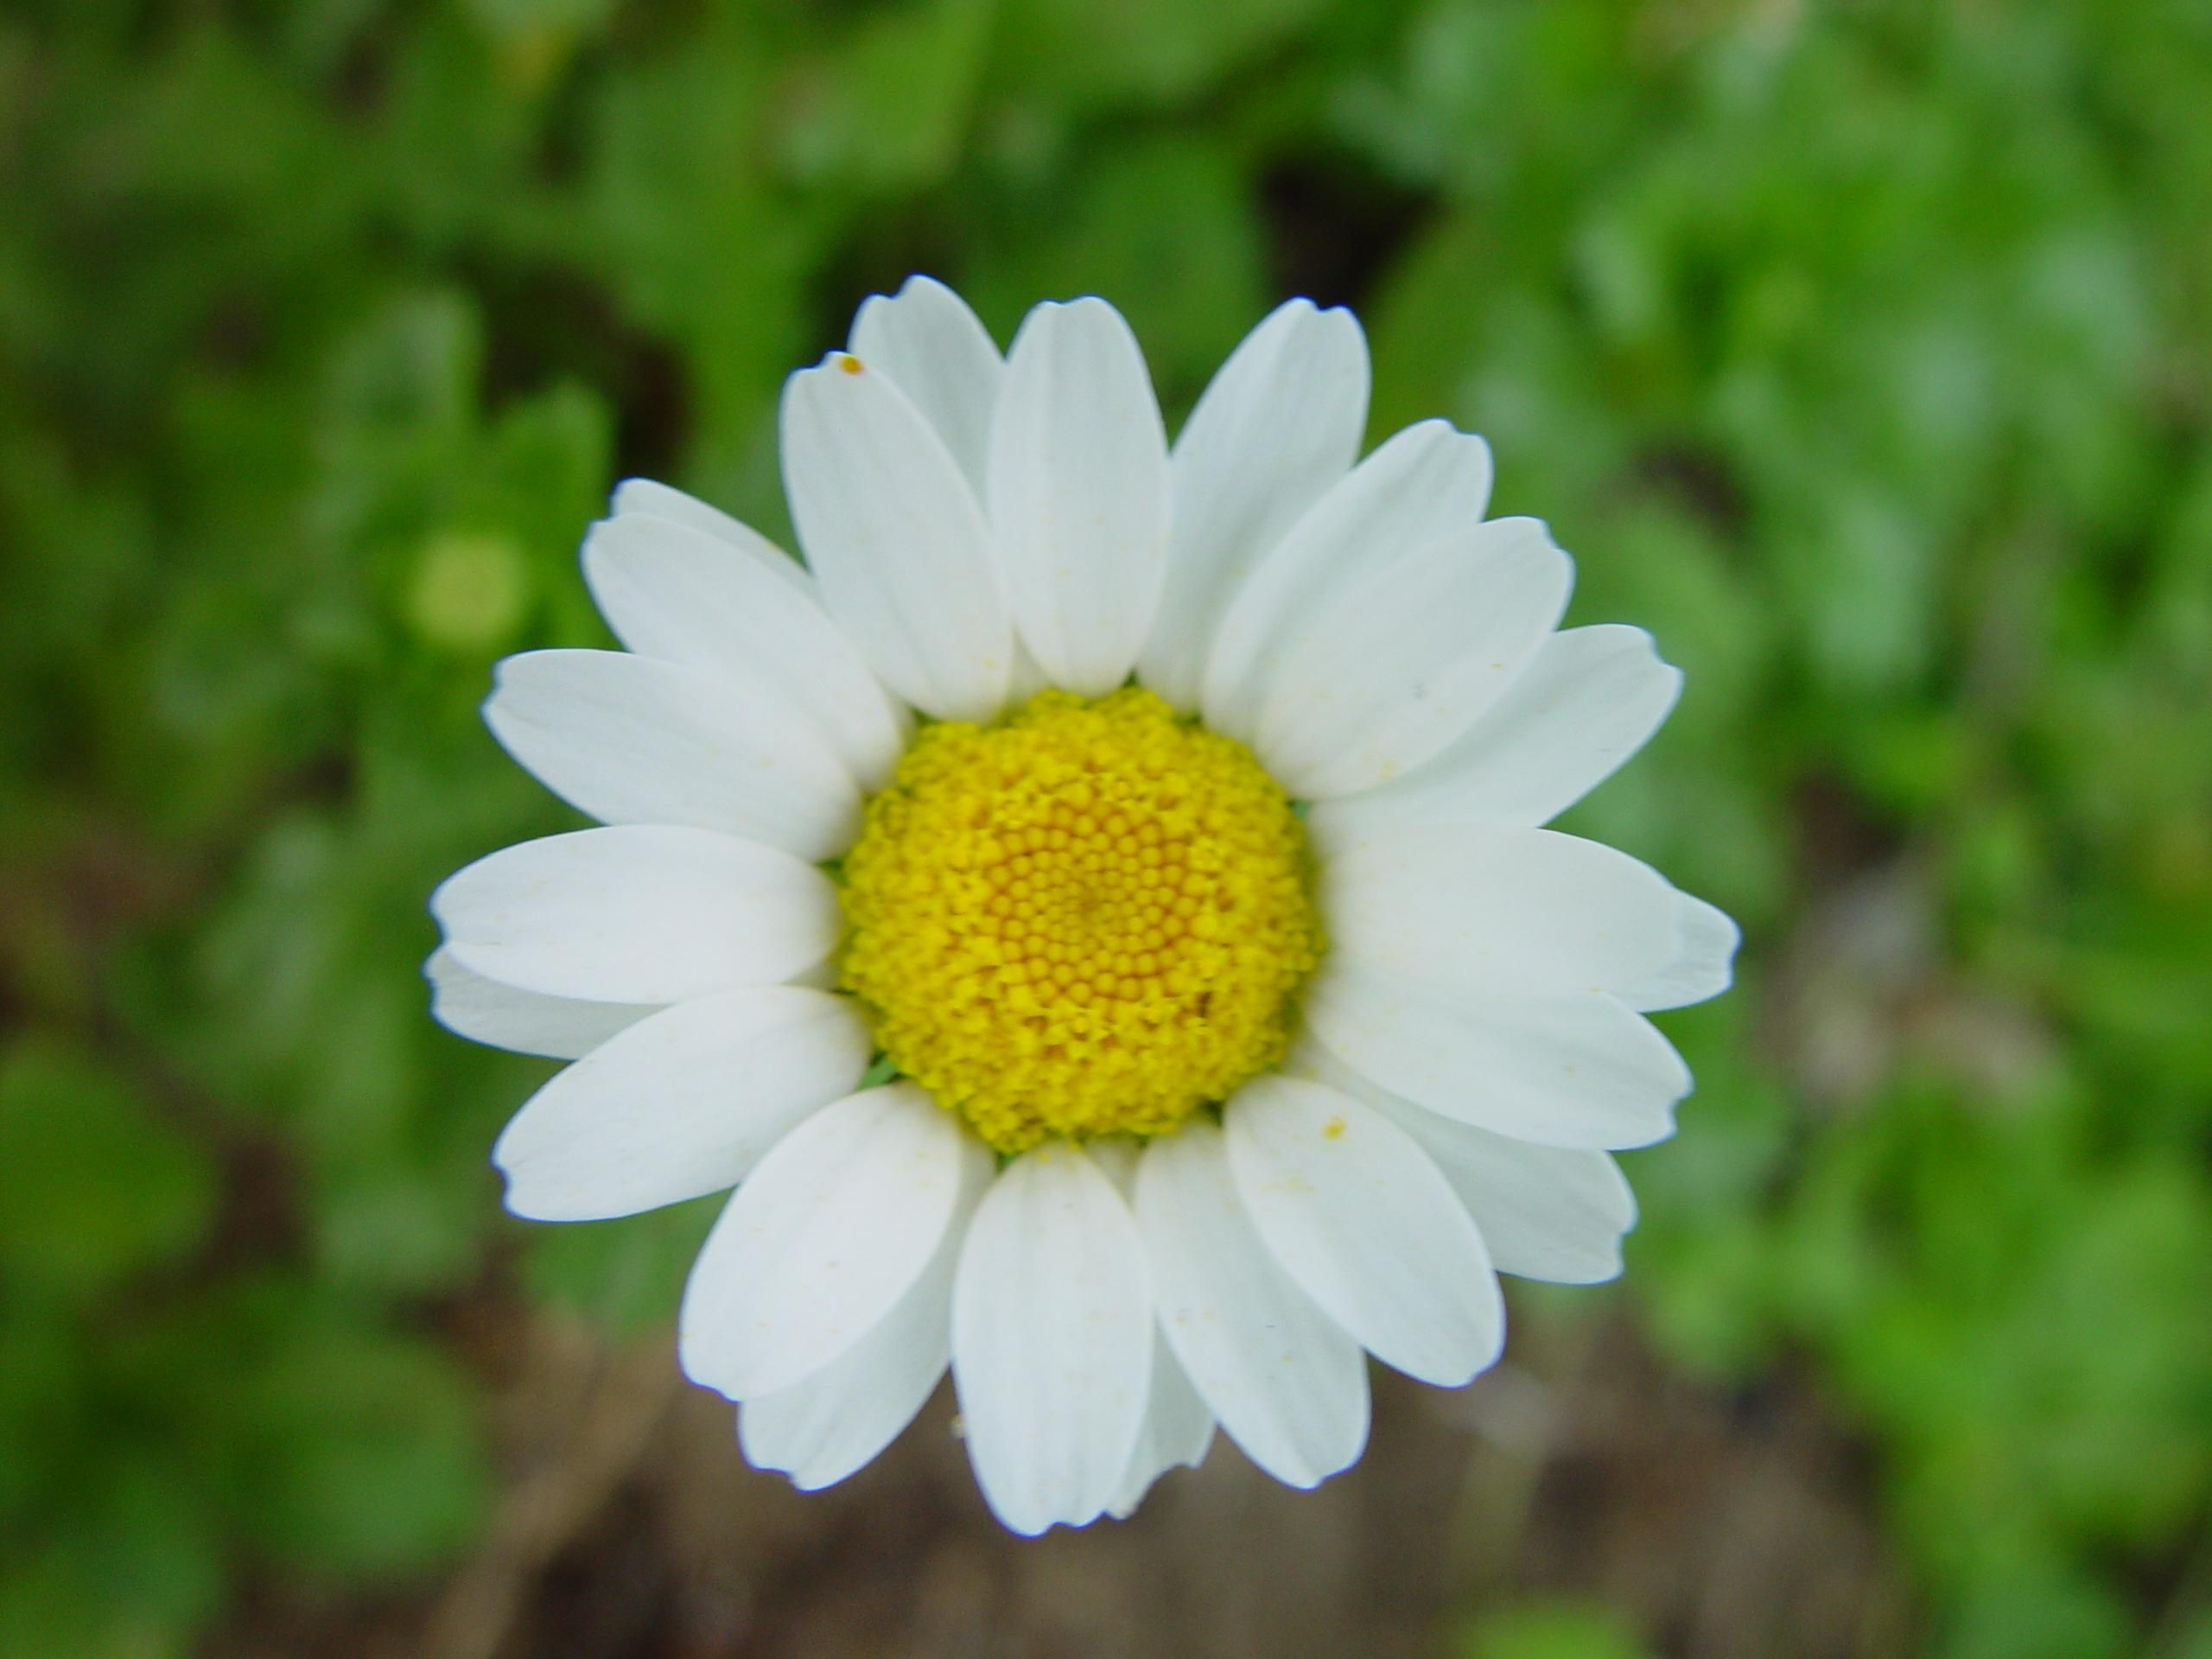 File Daisy flower green background Wikimedia mons